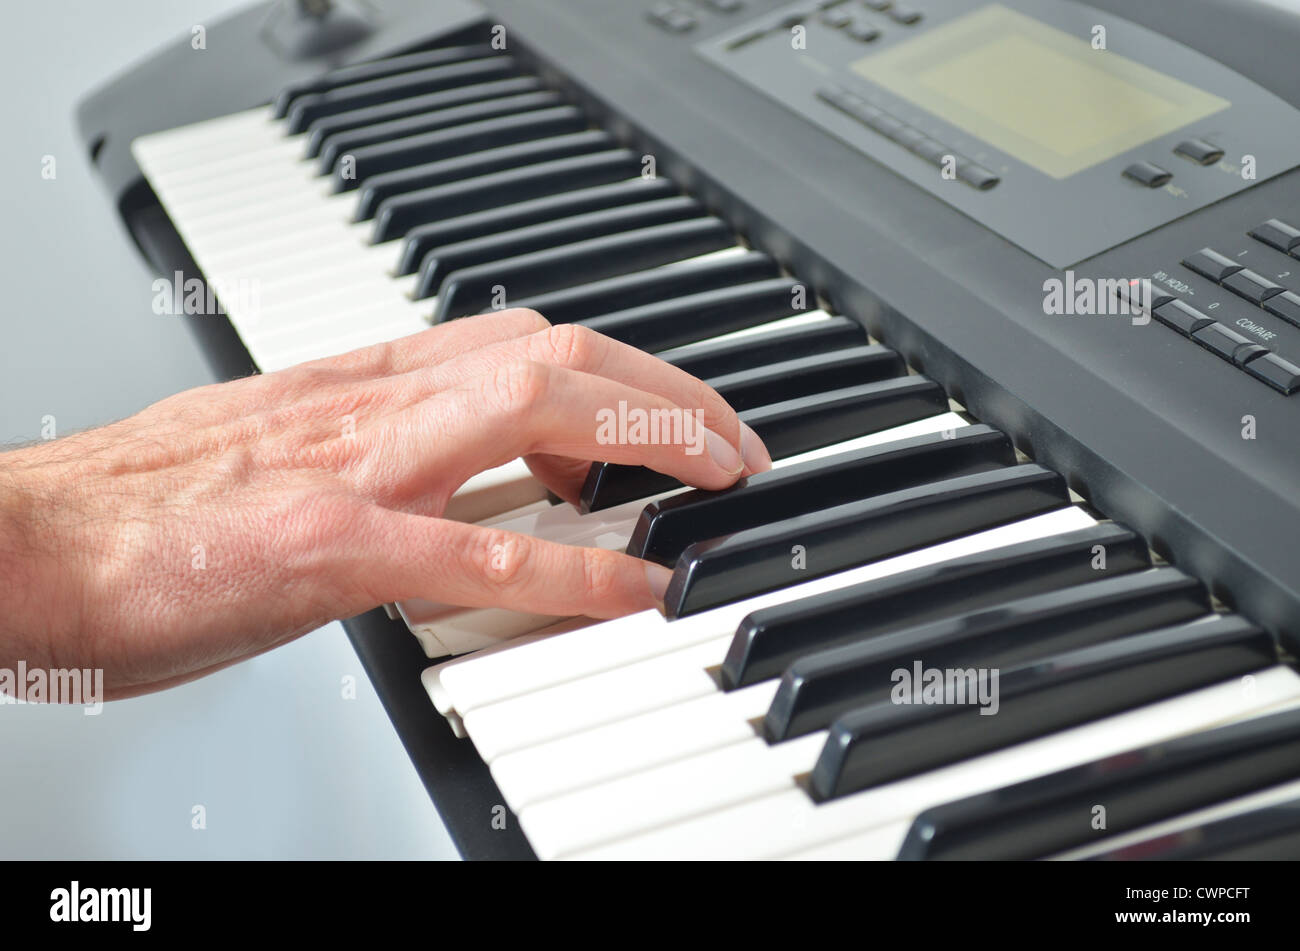 Single hand on electronic synthesizer playing music - Stock Image